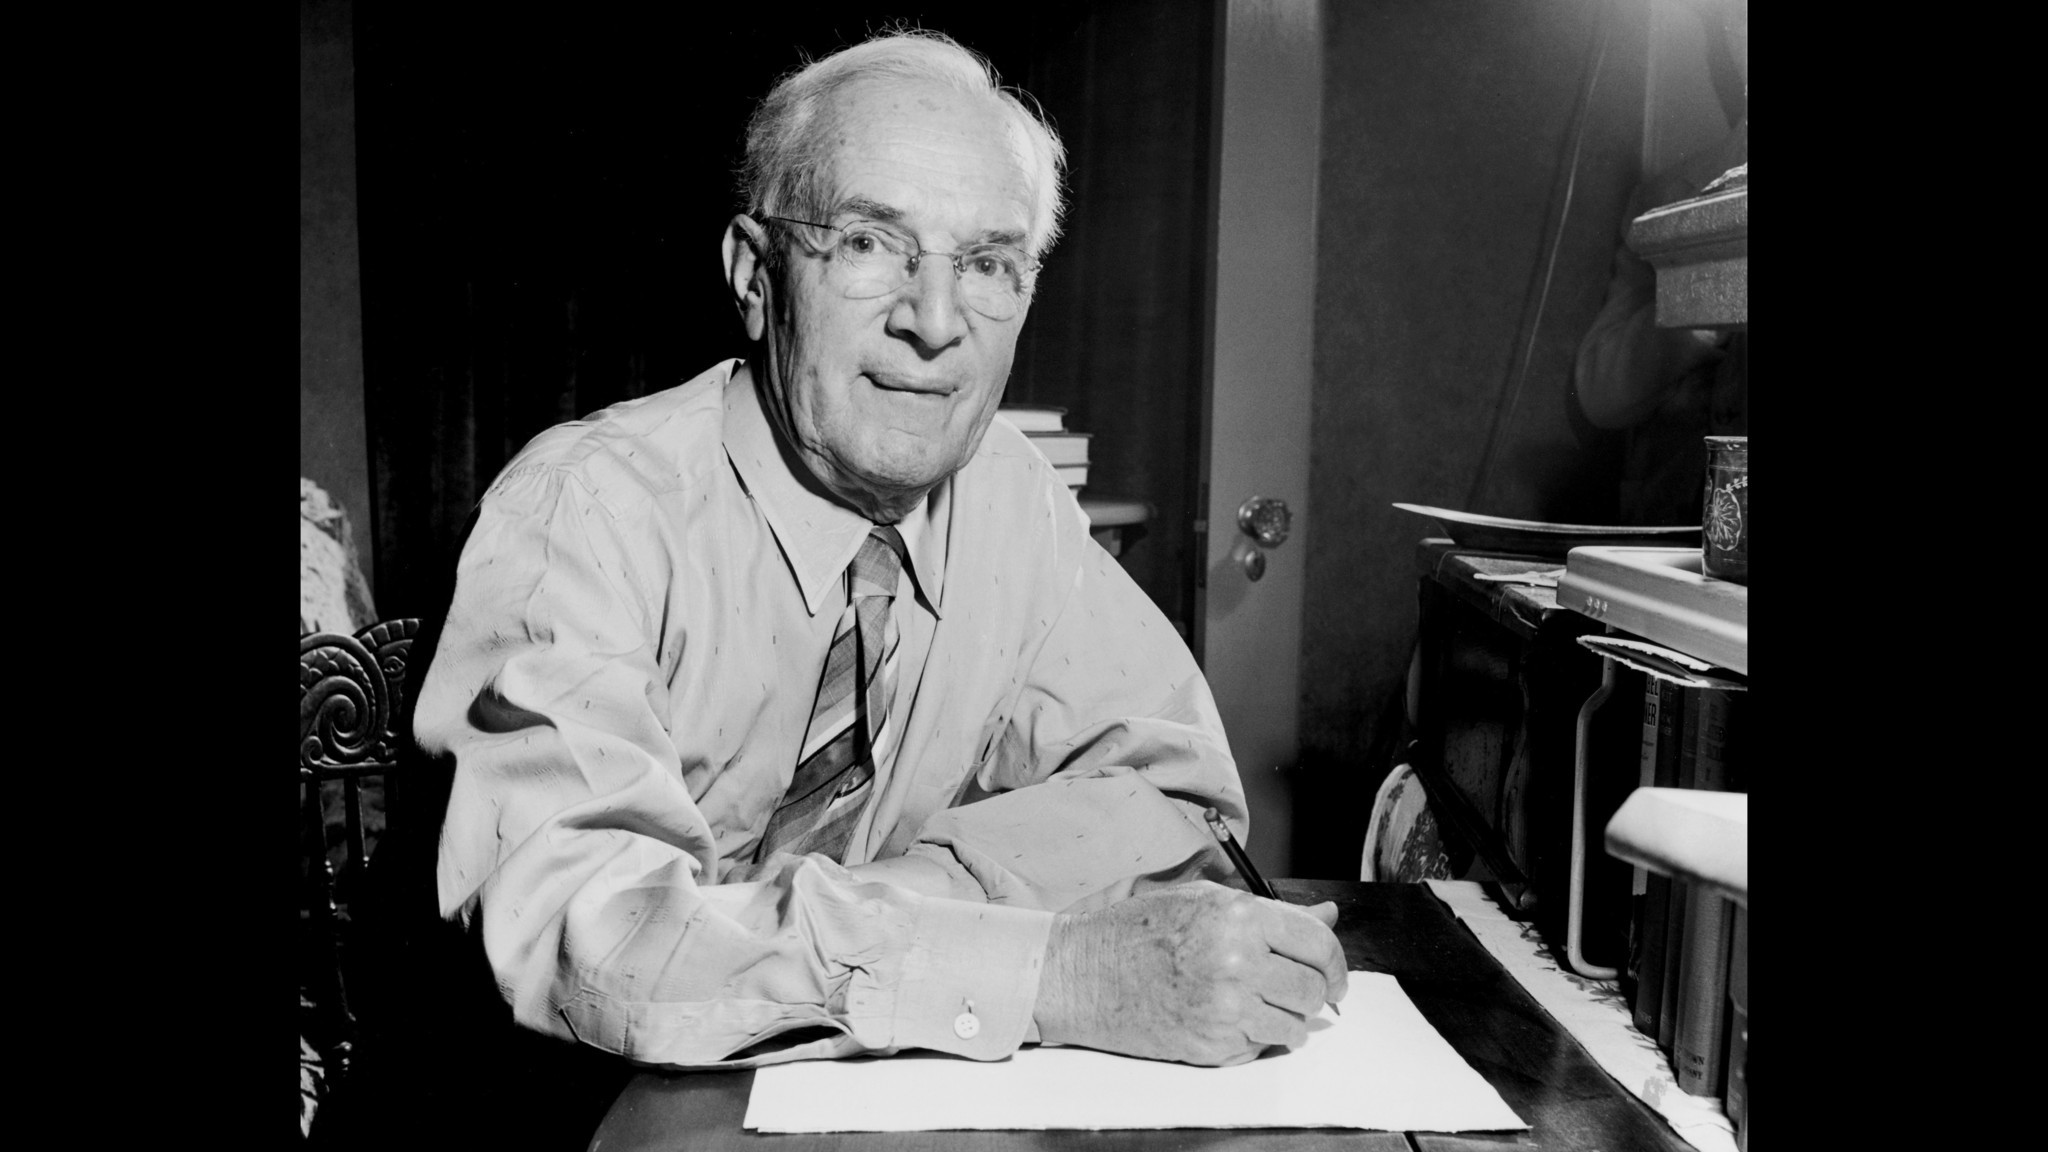 the life and contribution of upton sinclair Upton sinclair and the contradictions of capitalist journalism and upton sinclair was at its epicenter upton sinclair is best remembered for his novel the.